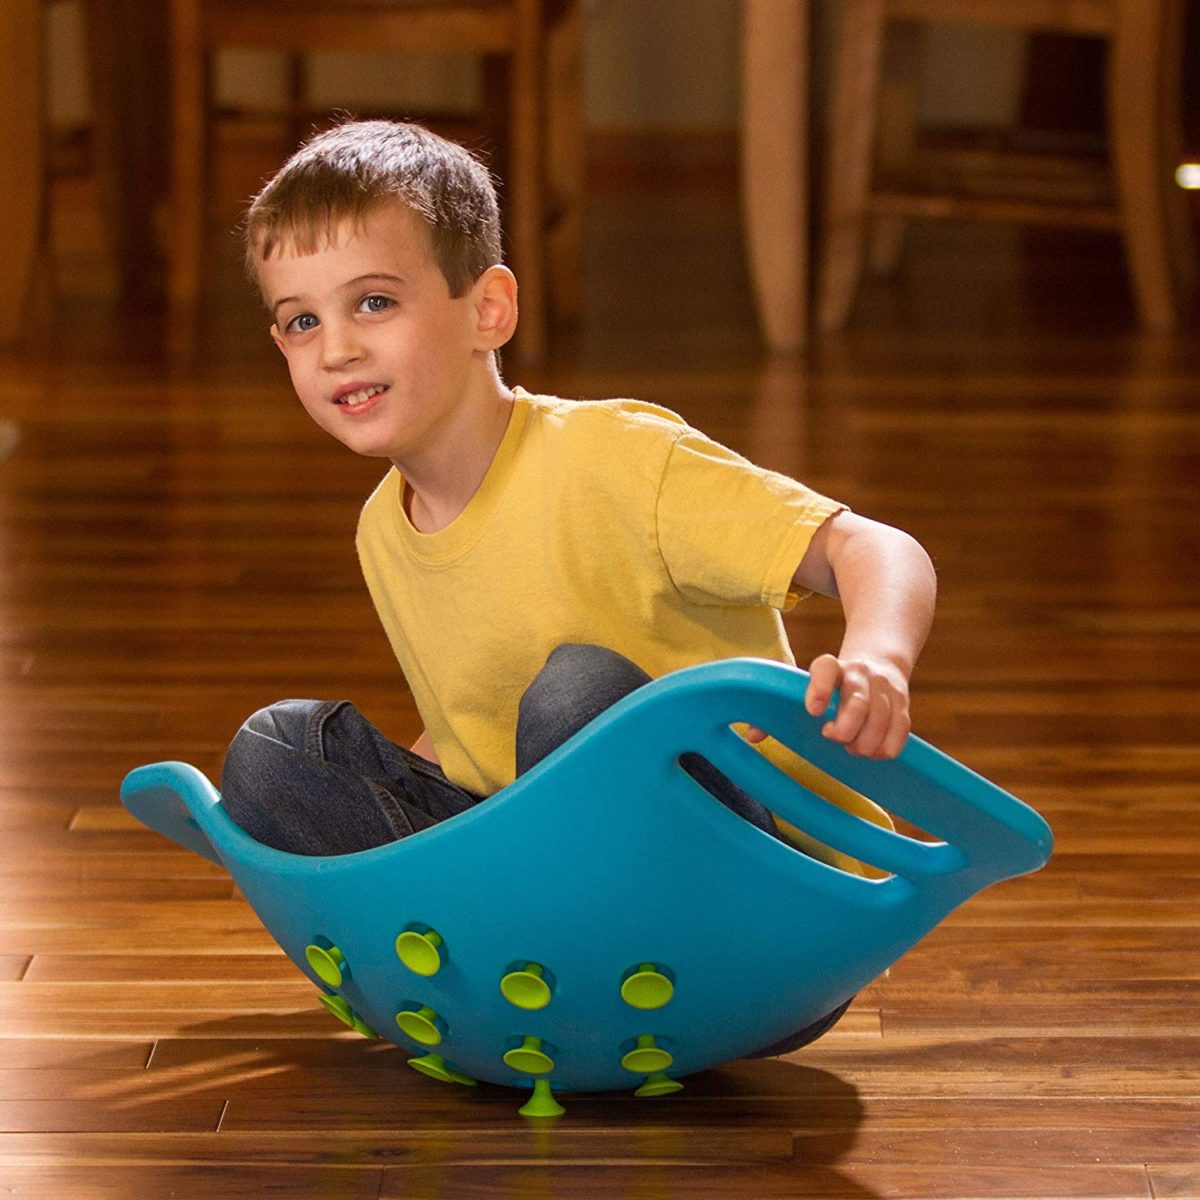 10 of the best toys for kids with autism according to parents and health professionals